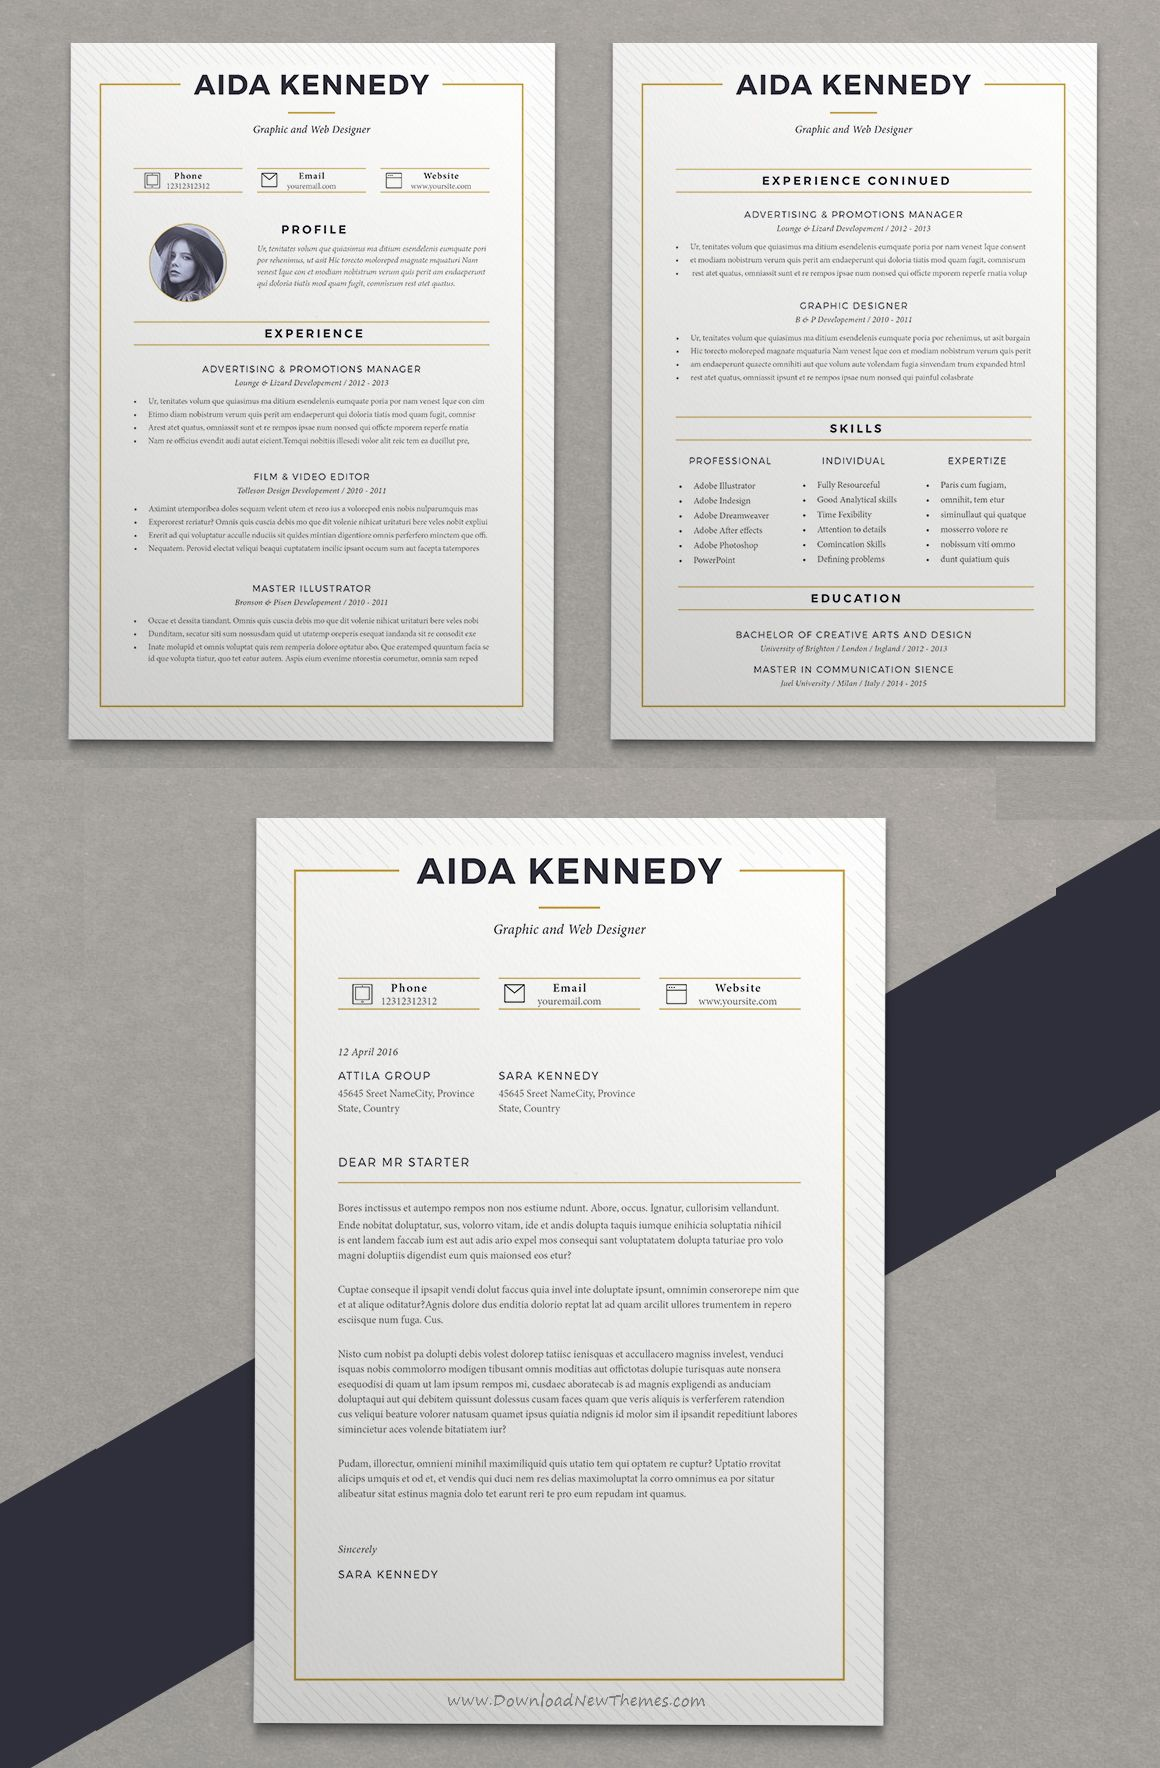 wonderful 2 page professional resume template with cover letter download in microsoft word cs5 indesign pdf format resumetemplate cv